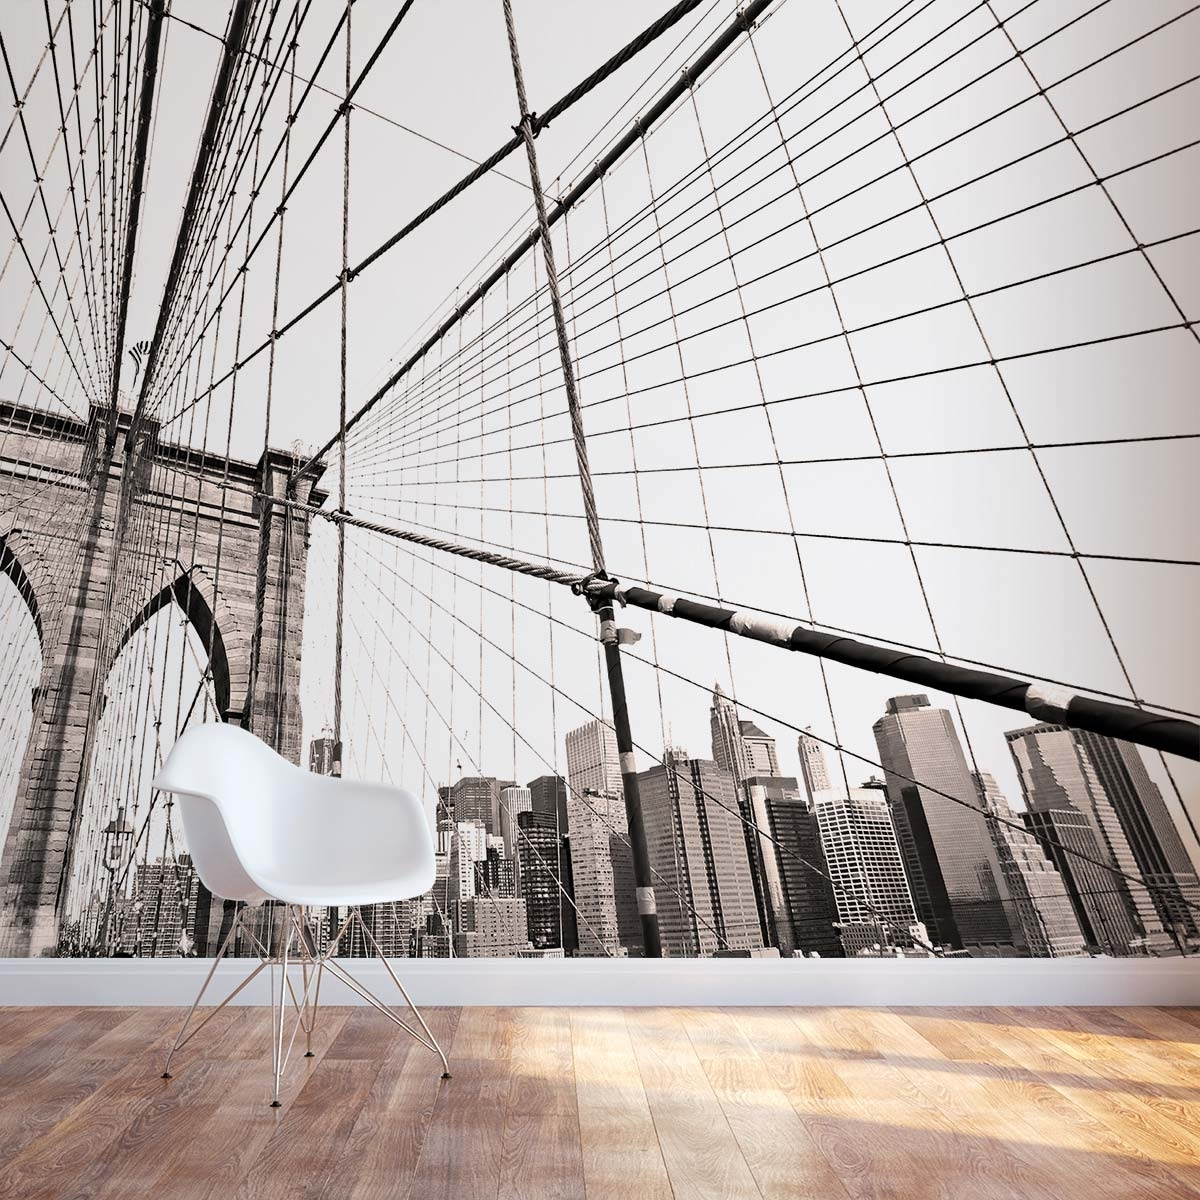 Showing Gallery of Brooklyn Bridge Wall Decals View 1 of 15 Photos